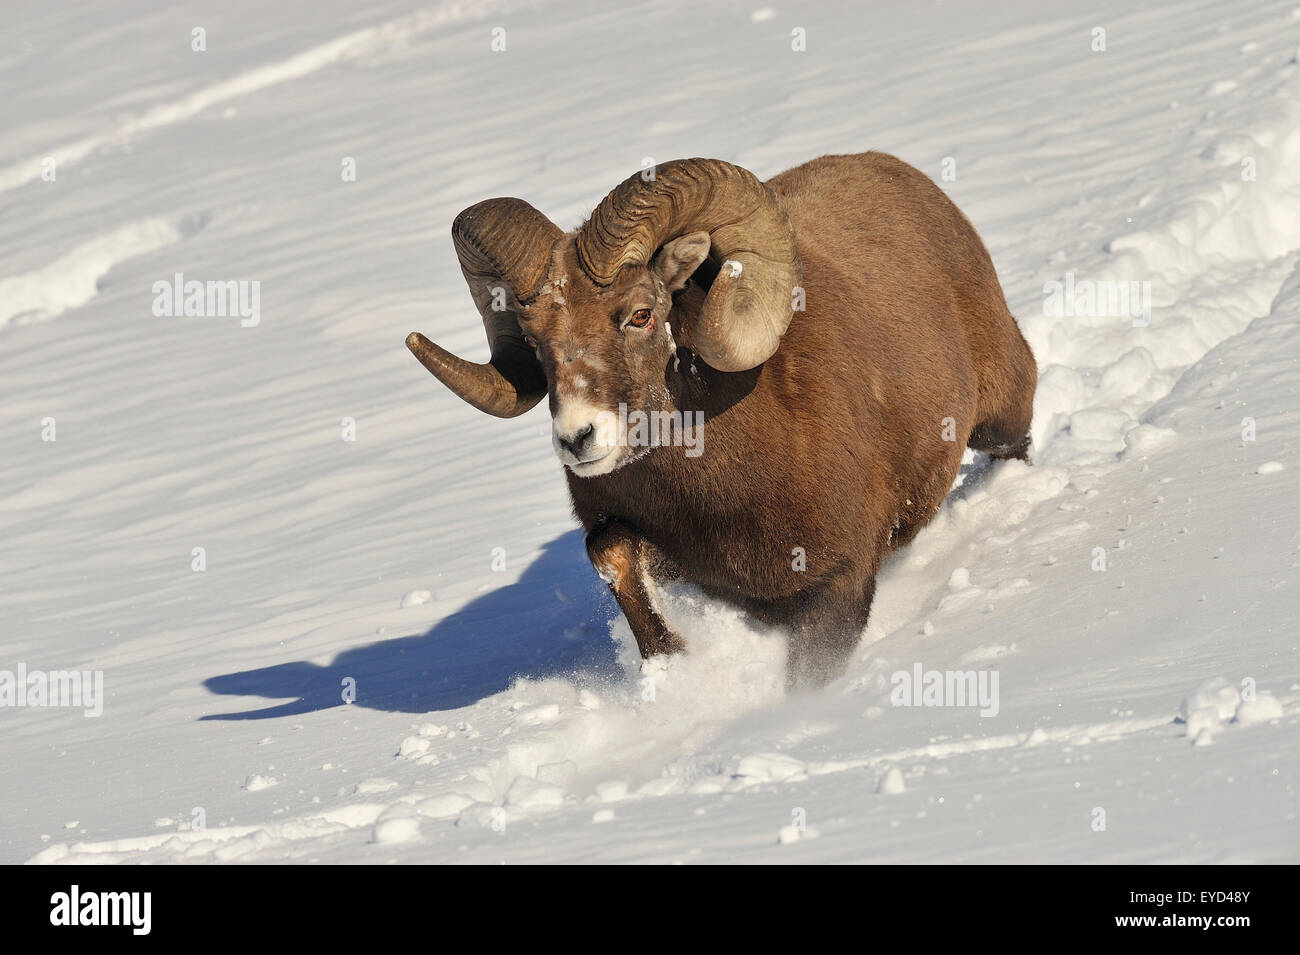 A close up front view image of a rocky mountain bighorn ram running down a snow covered hill side - Stock Image